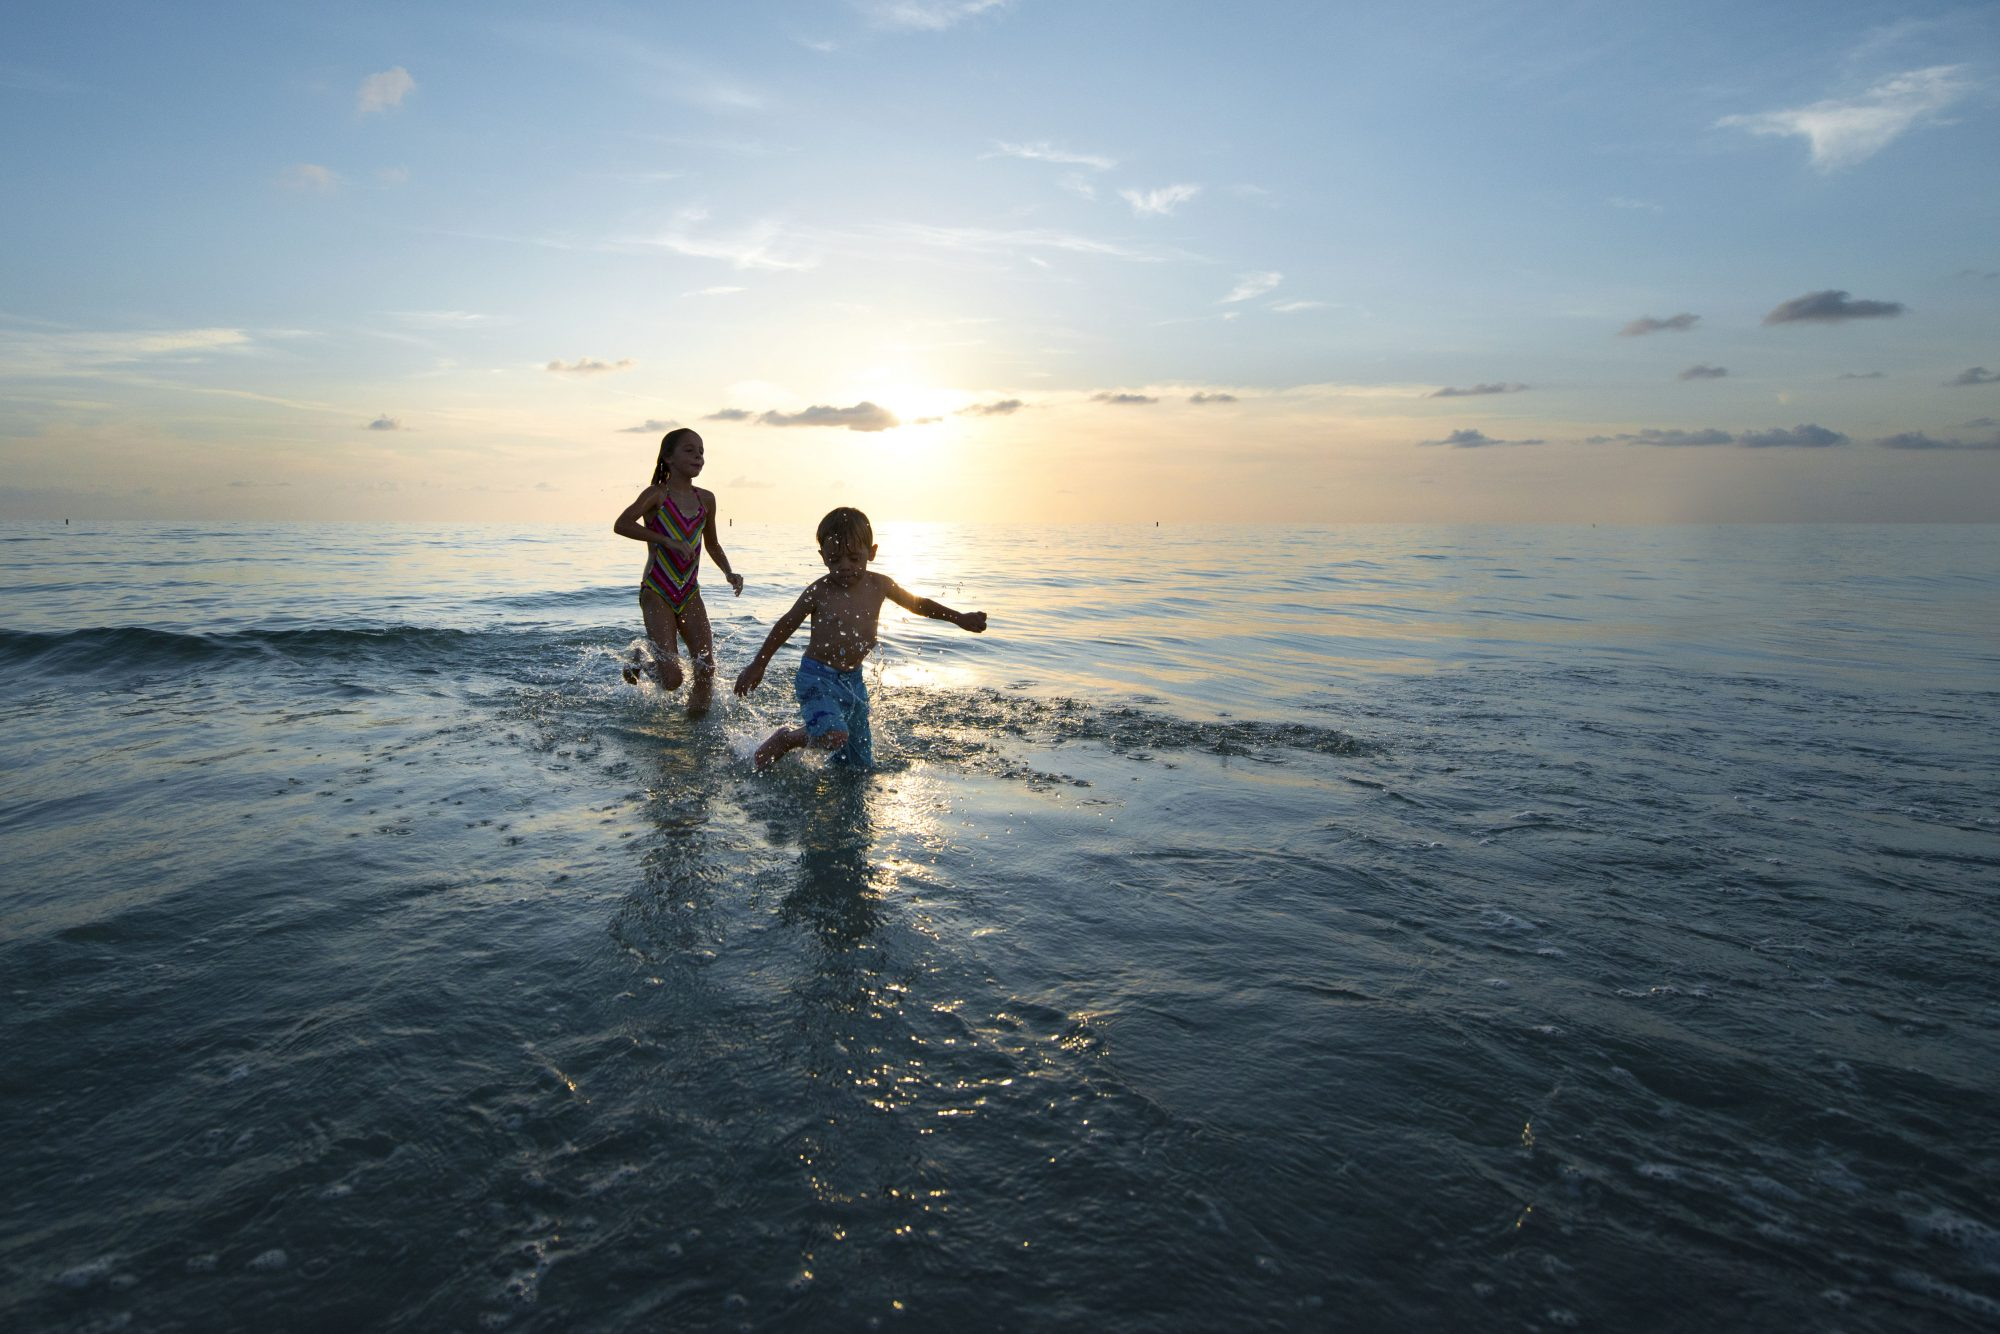 Young girl and boy running in ocean at sunset in Florida, USA.